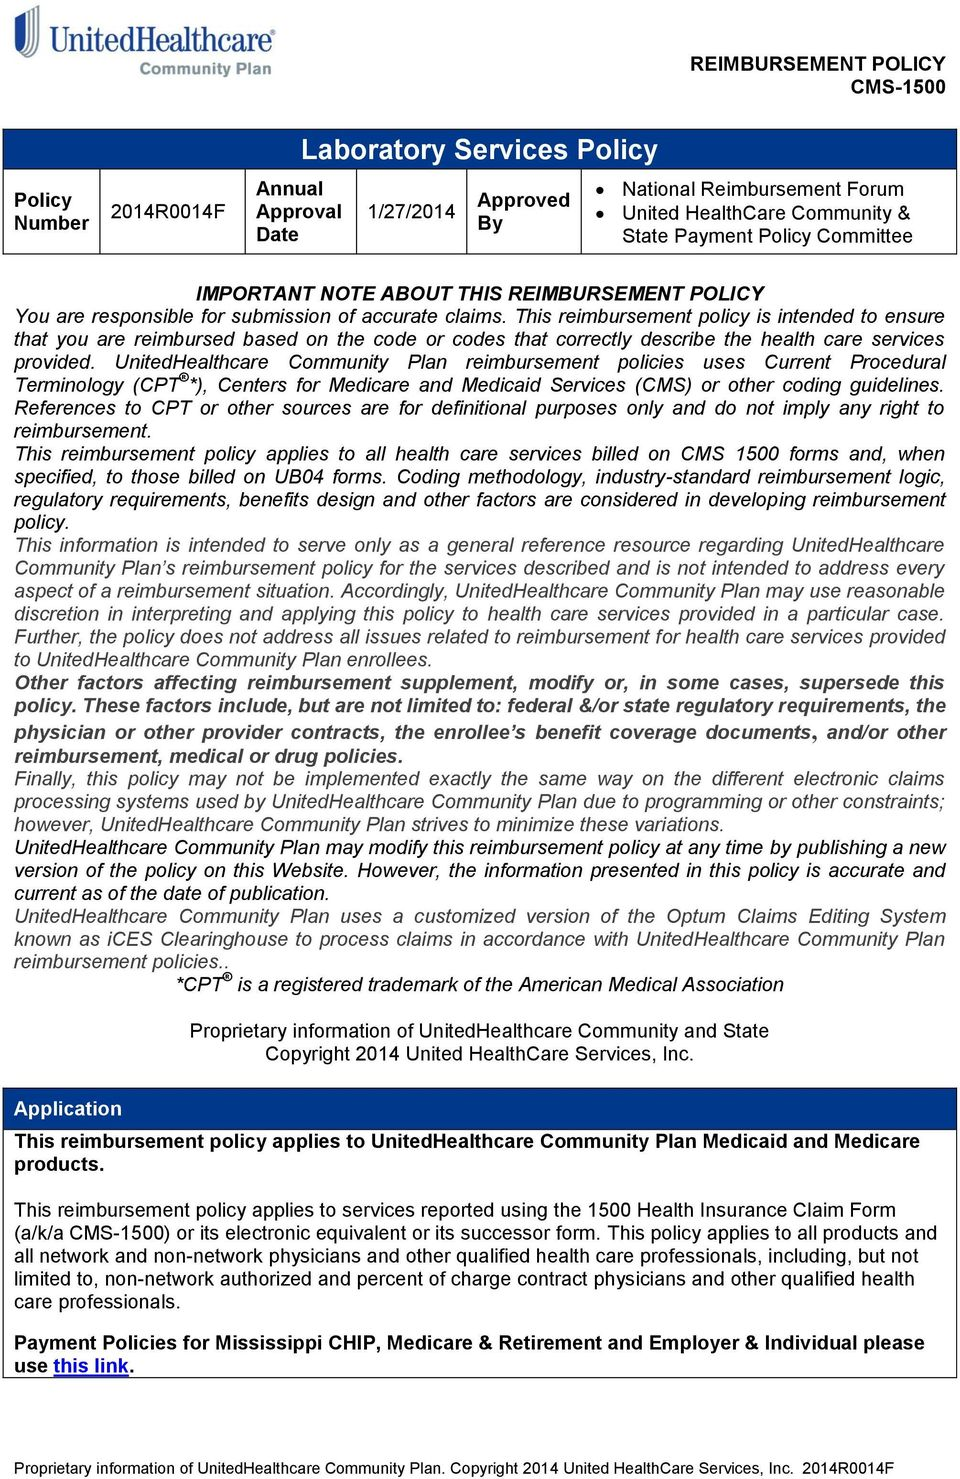 Laboratory Services Policy - PDF